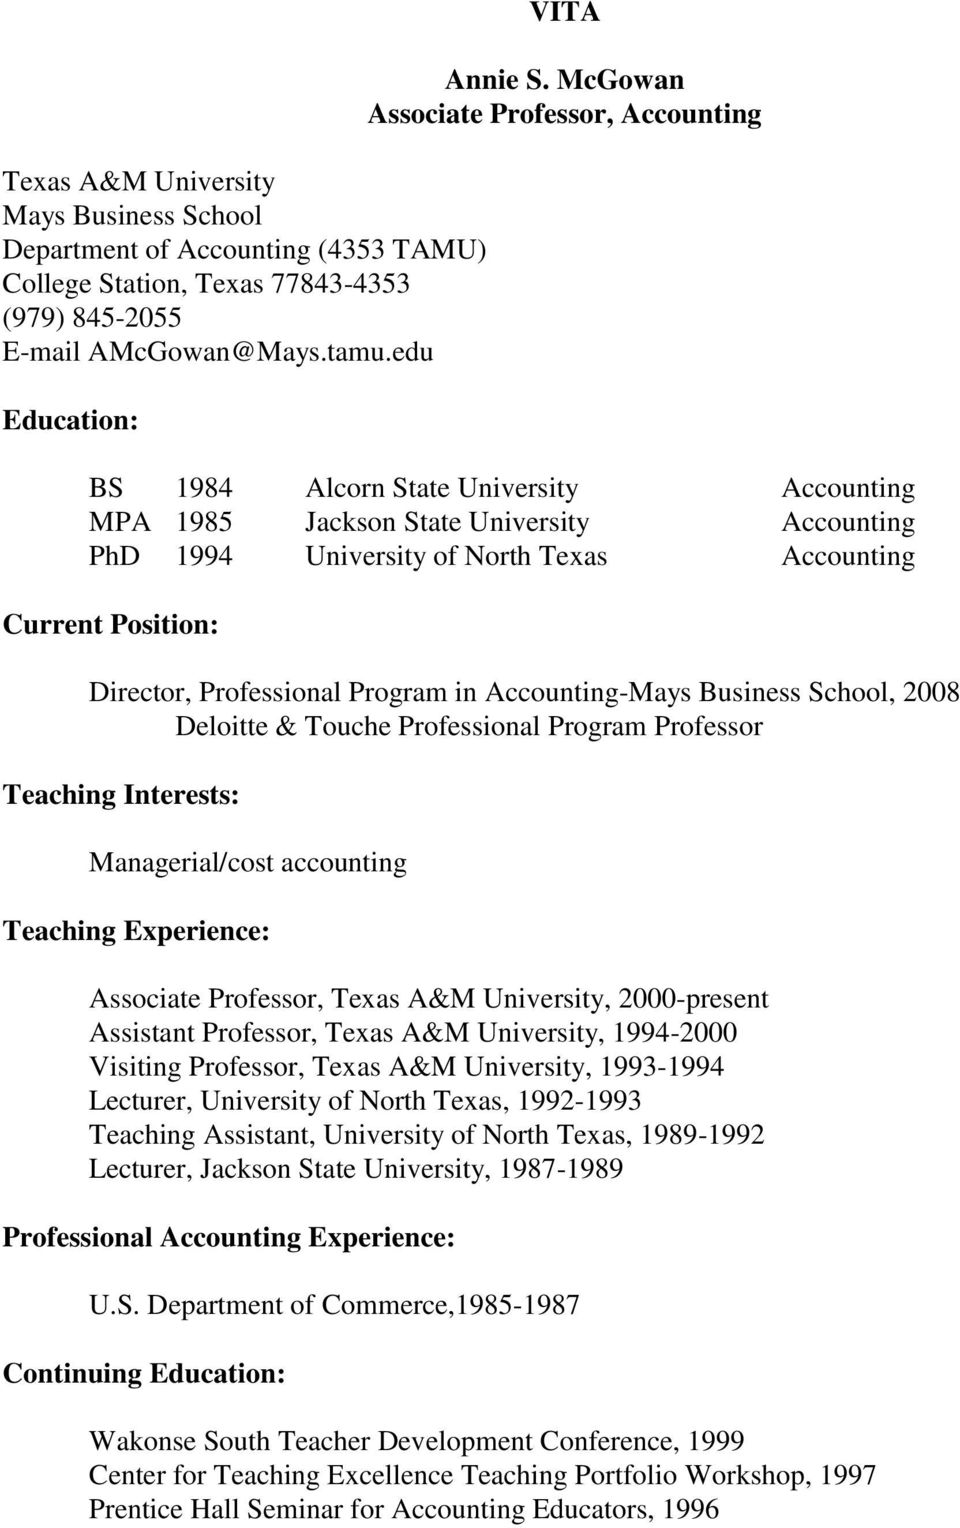 Director, Professional Program in Accounting-Mays Business School, 2008 Deloitte & Touche Professional Program Professor Teaching Interests: Managerial/cost accounting Teaching Experience: Associate